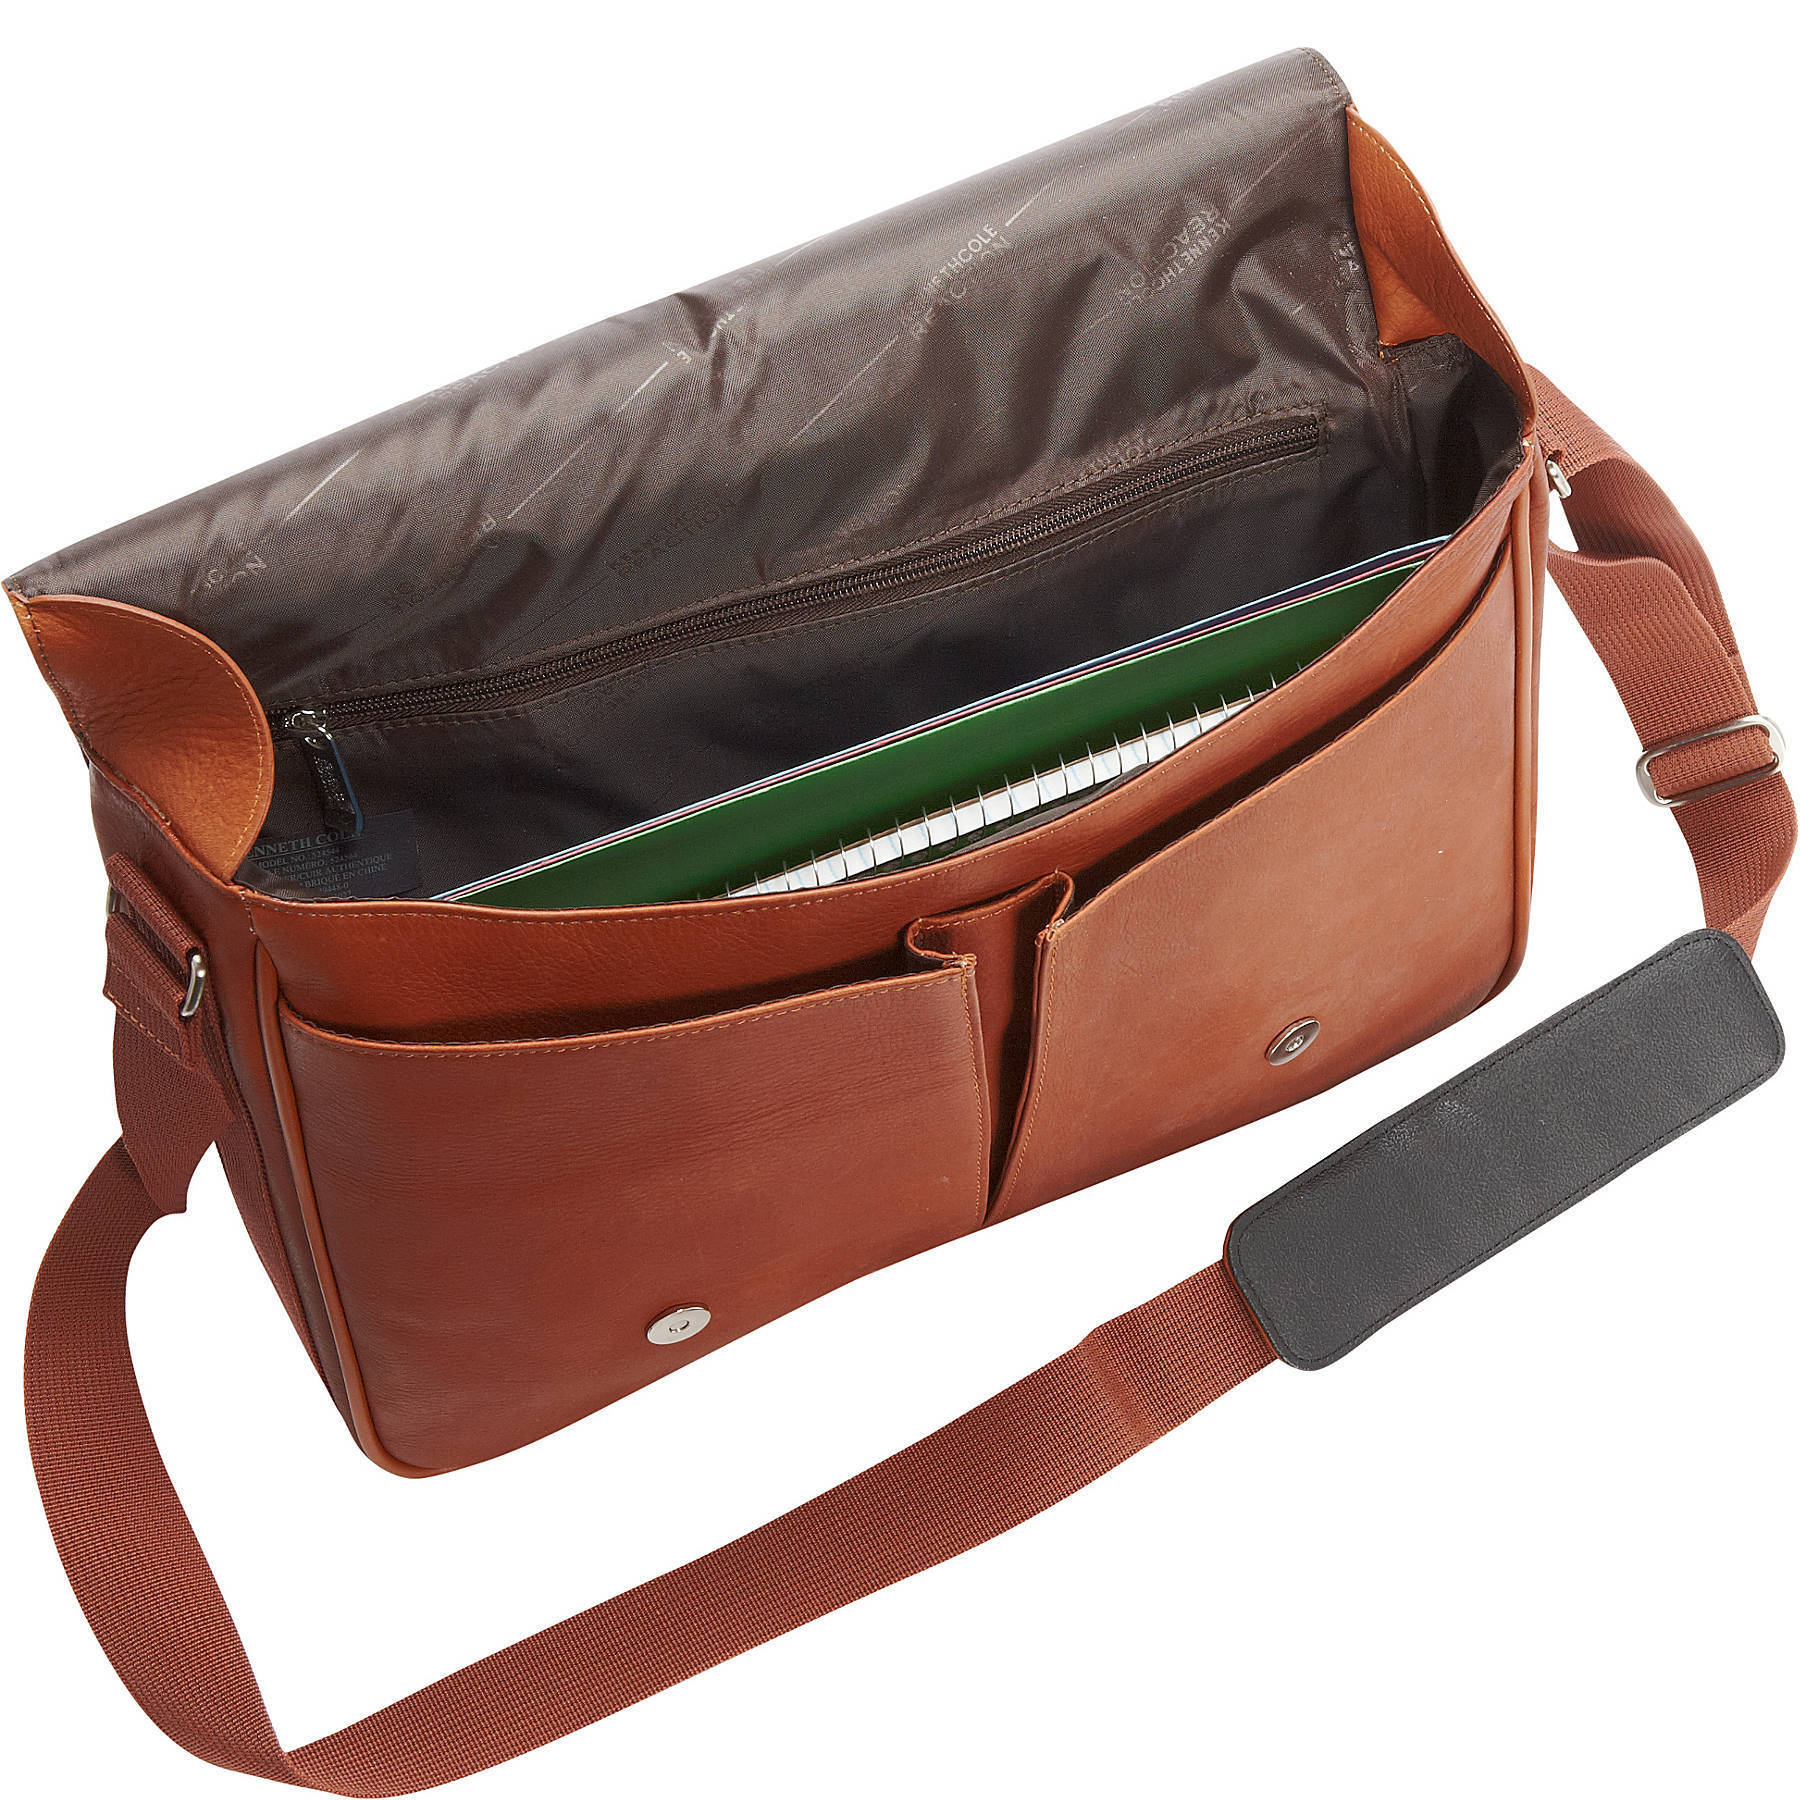 Shop Kenneth Cole Reaction  Risky Business  Colombian Leather Slim Flapover  Crossbody Messenger Bag - Free Shipping Today - Overstock - 19386755 3fde9f8d75219